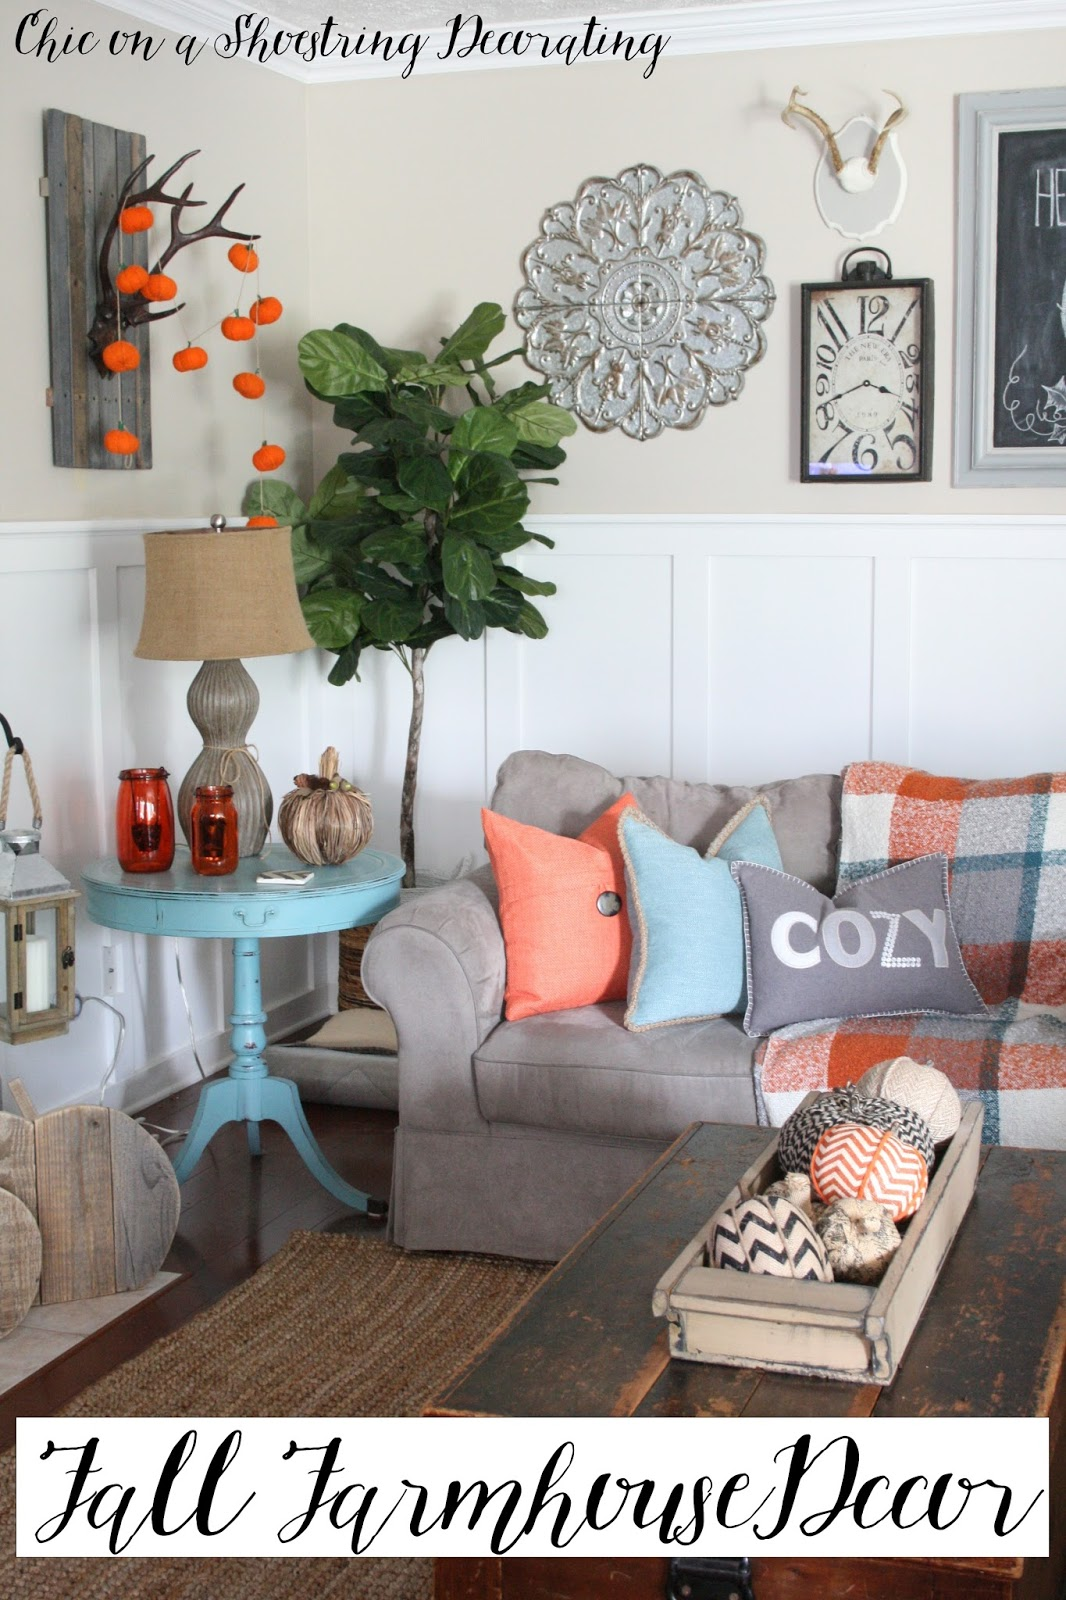 Chic on a Shoestring Decorating Fall Farmhouse Decor to Last All Season